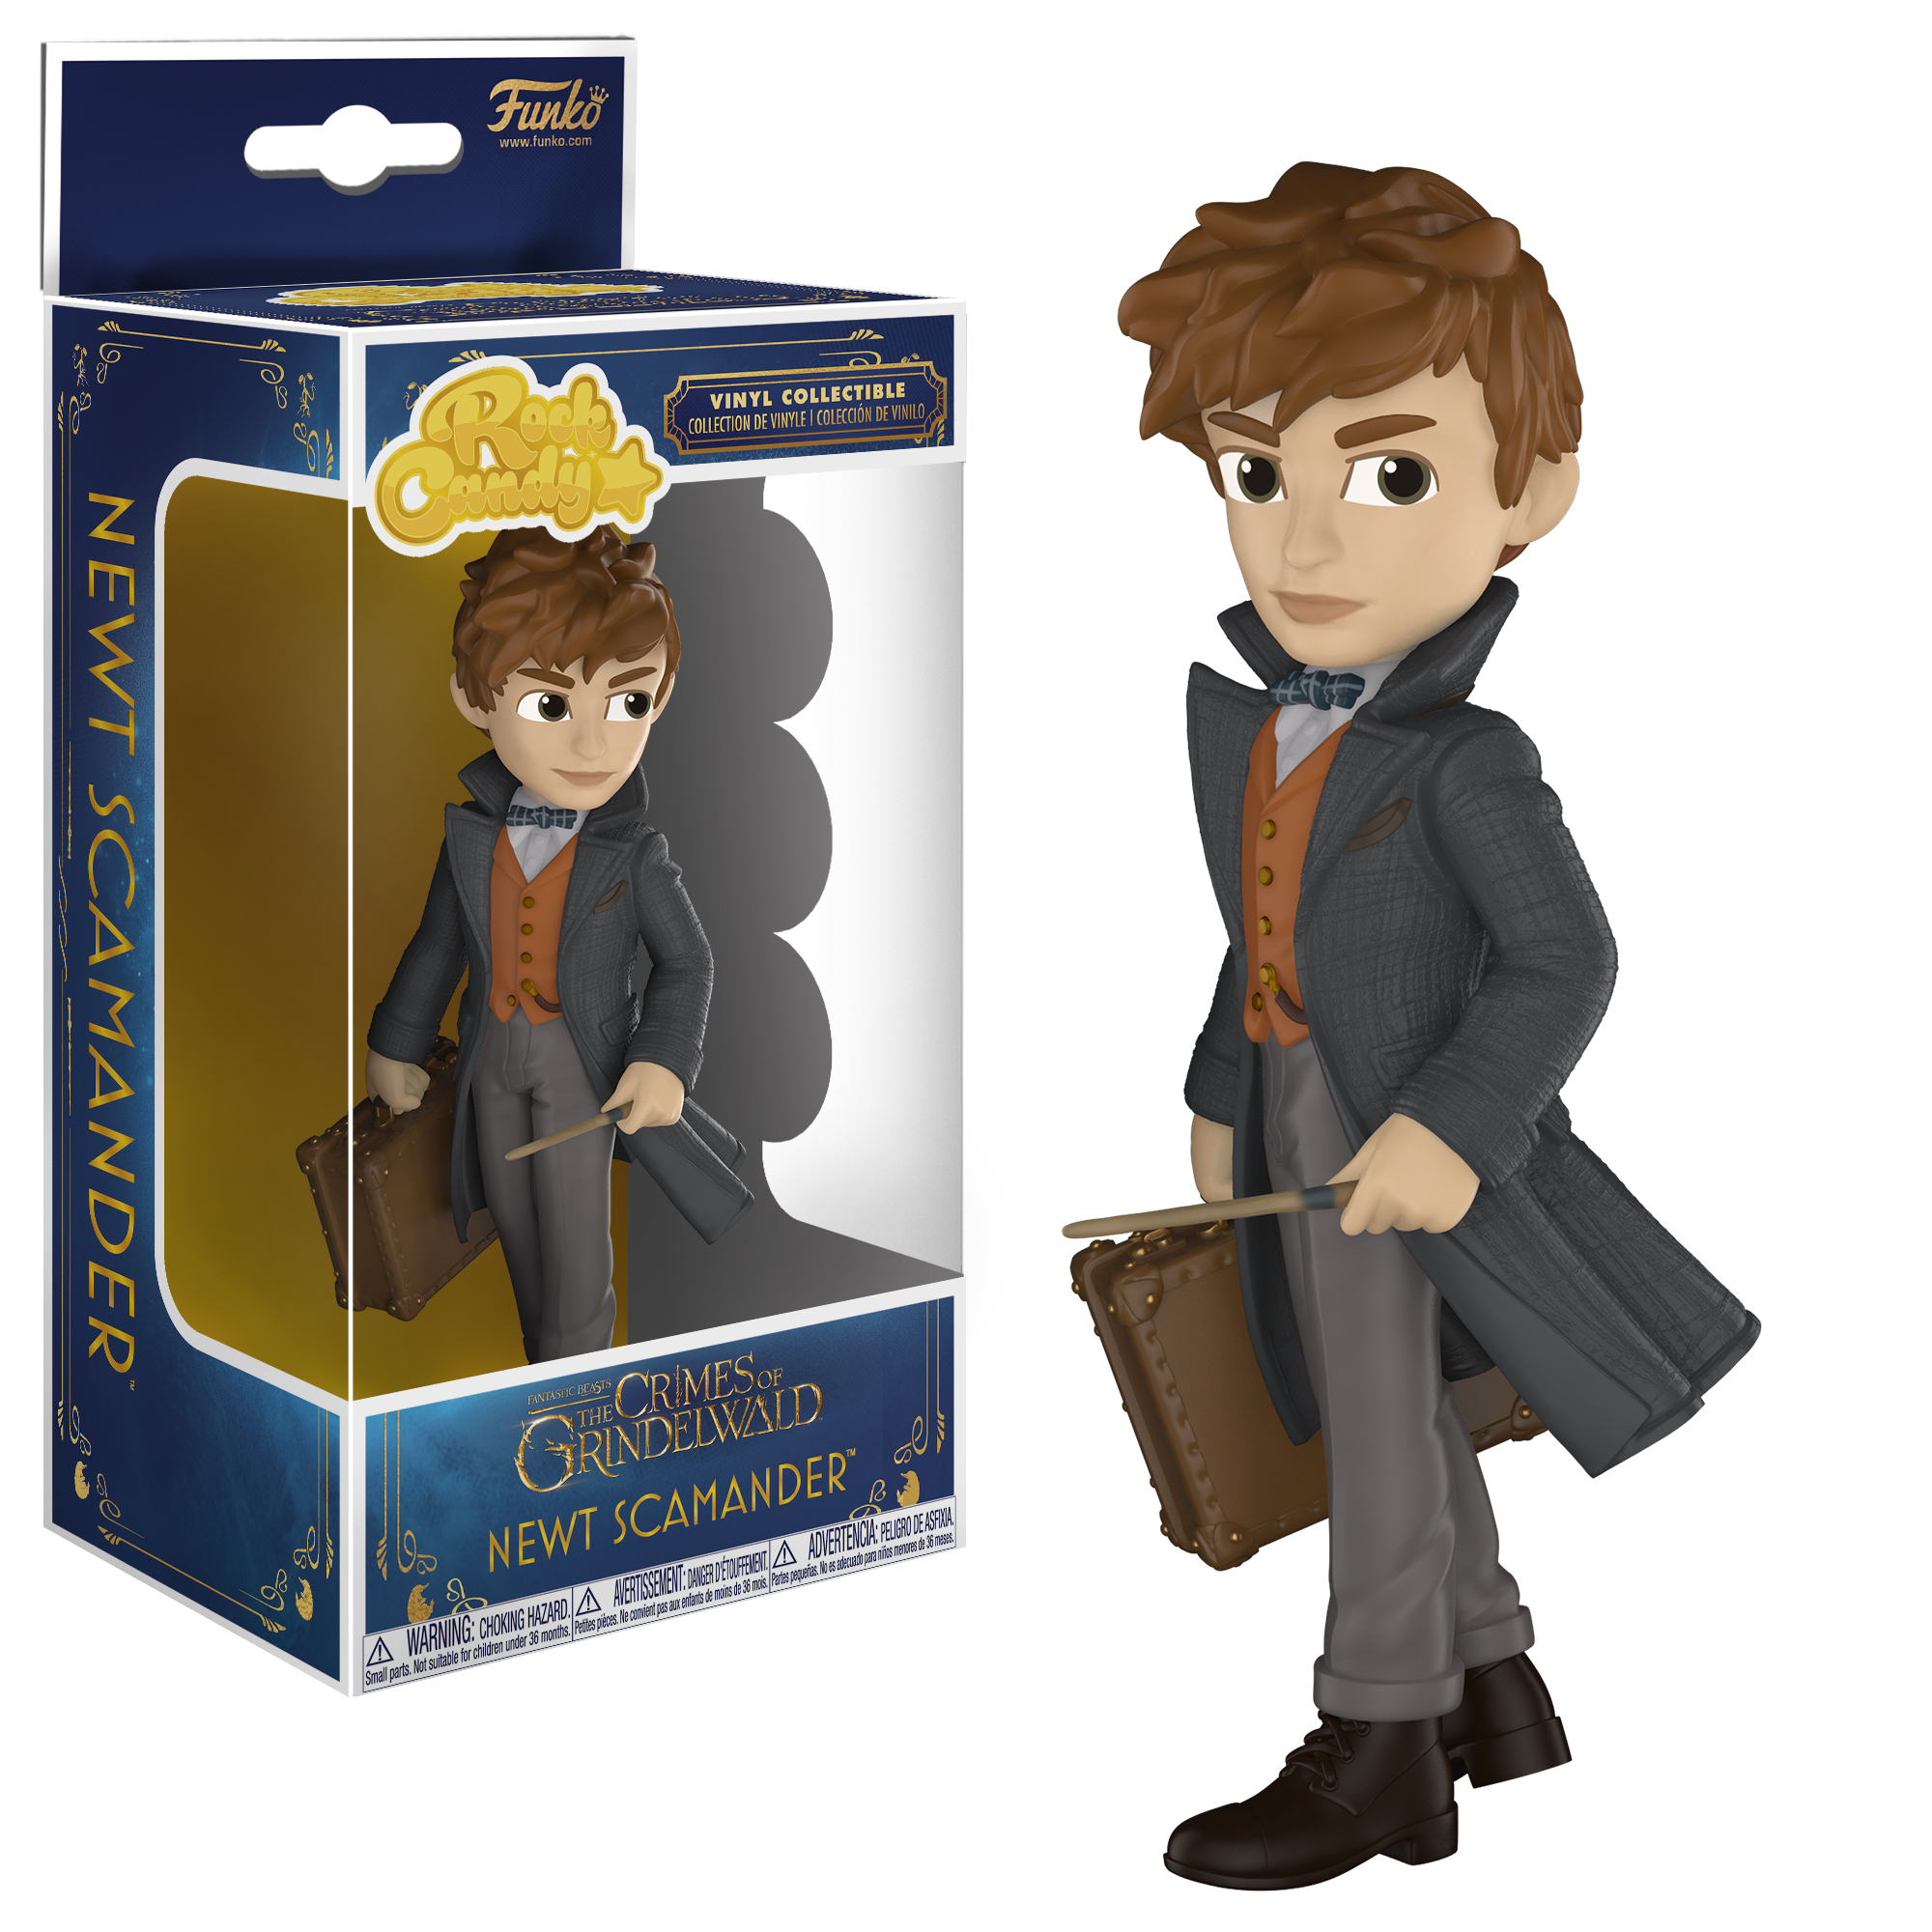 Fantastic Beasts Newt Collectible Figure